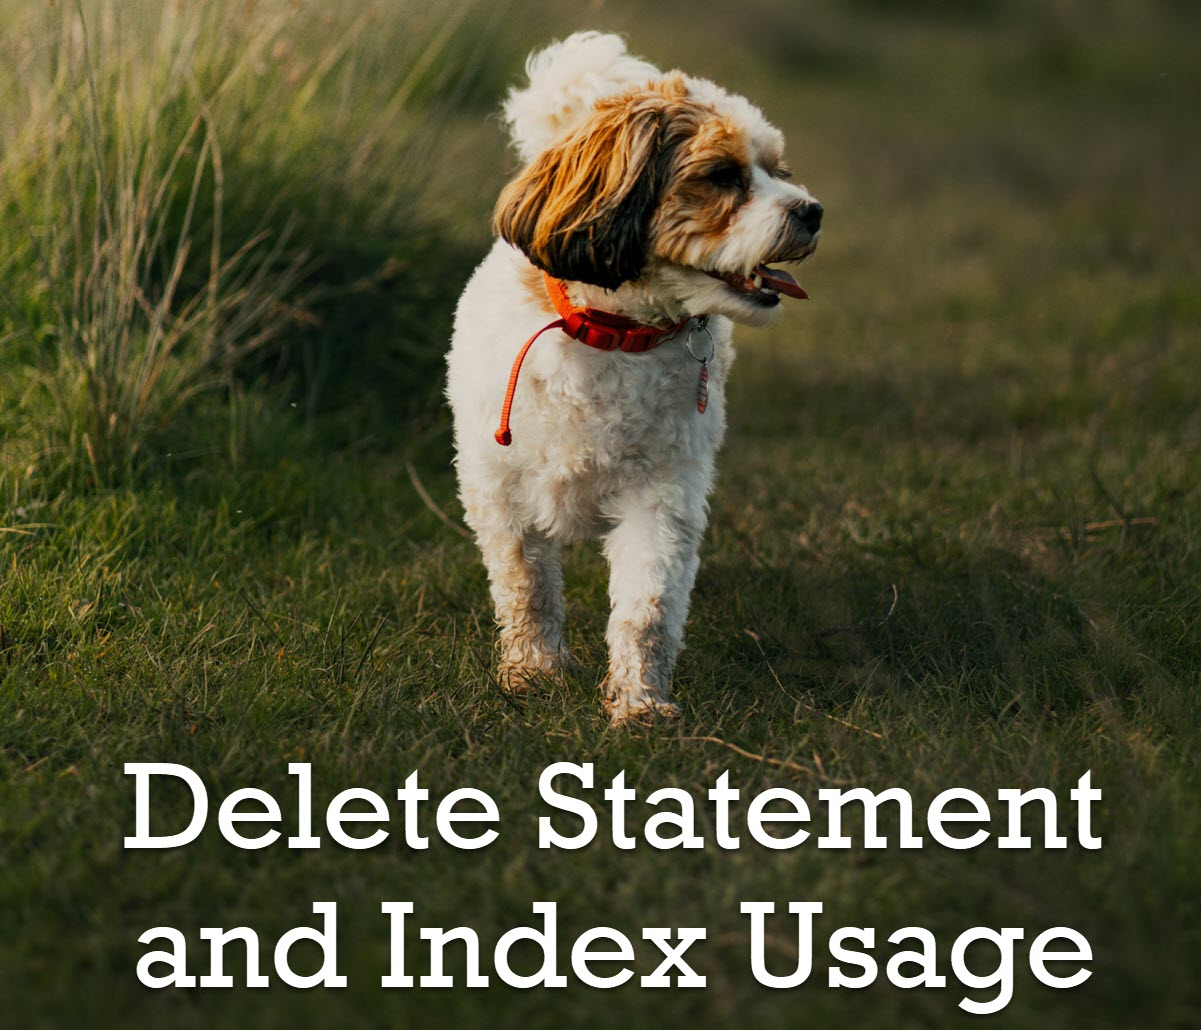 delete statement